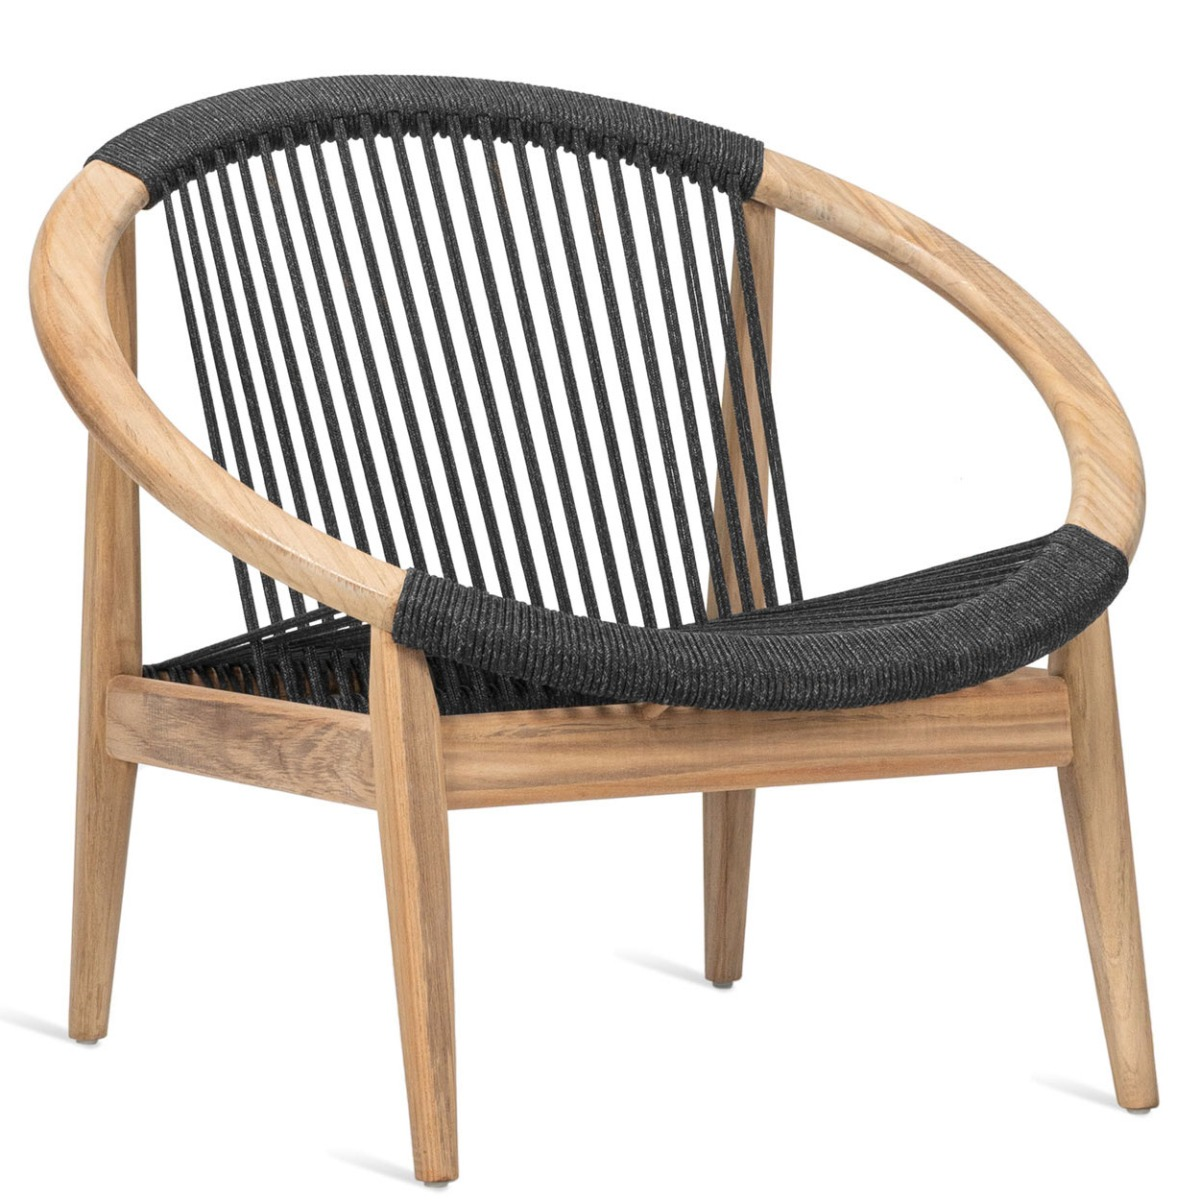 Vincent Sheppard Frida Loungestoel? Outdoor Lounge Chair ? Antraciet - Teakhout